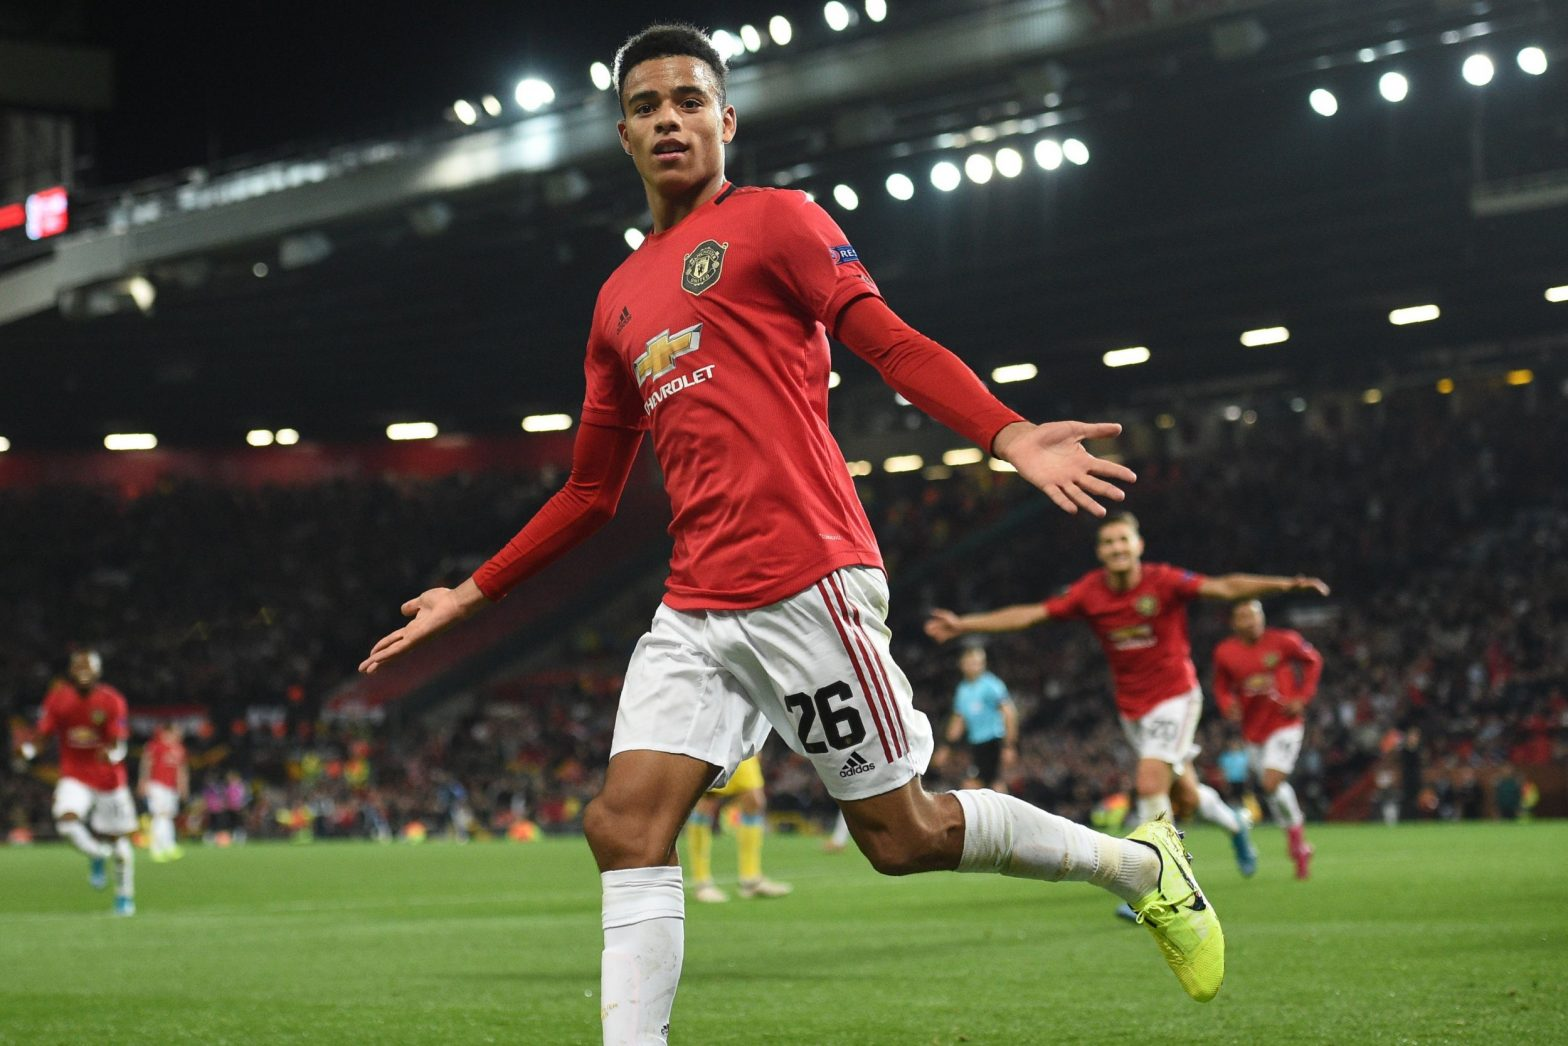 Manchester United vs Arsenal live stream: How to watch Premier League match online and on TV